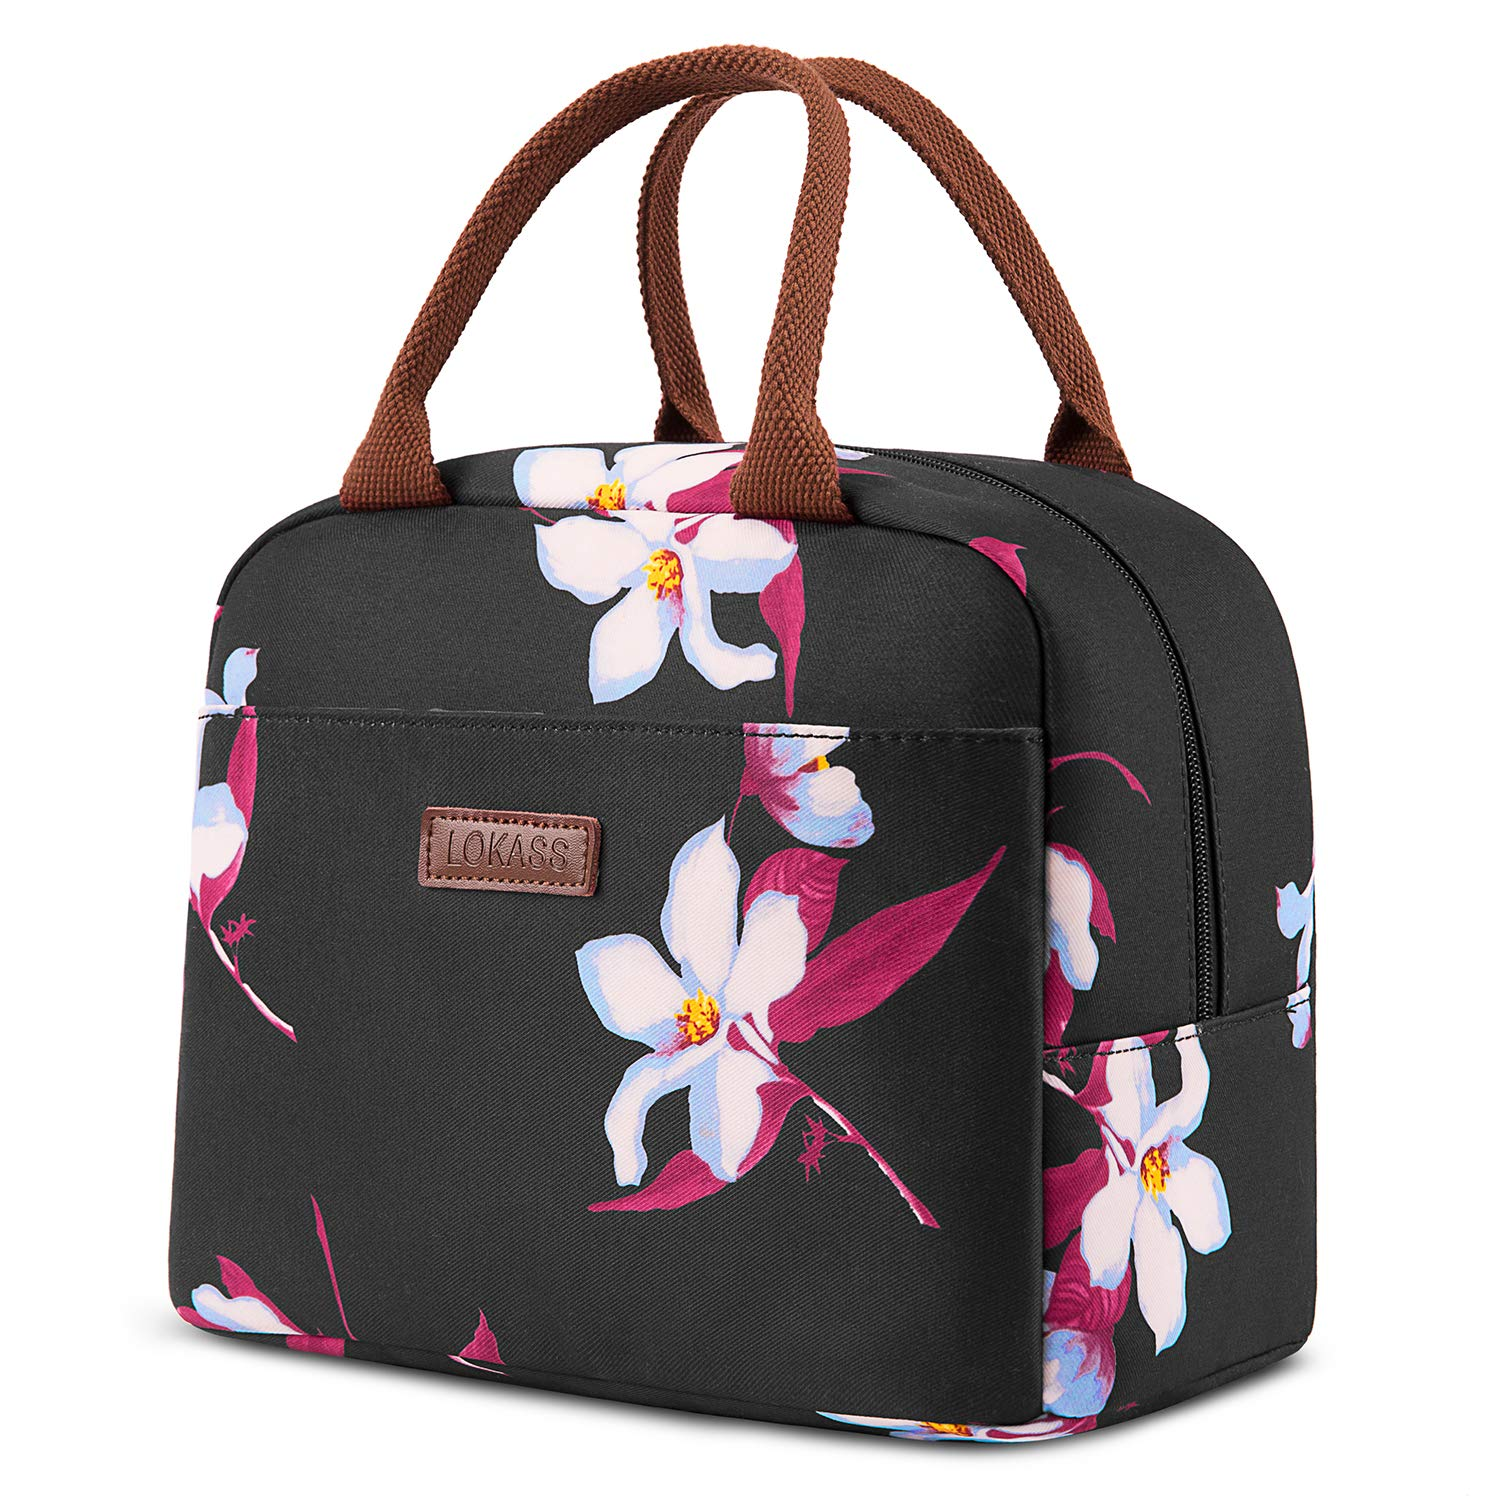 LOKASS Lunch Bag Cooler Bag Women Tote Bag Insulated Lunch Box Water-resistant Thermal Lunch Bag Soft Liner Lunch Bags for women/Picnic/Boating/Beach/Fishing/Work (Black)